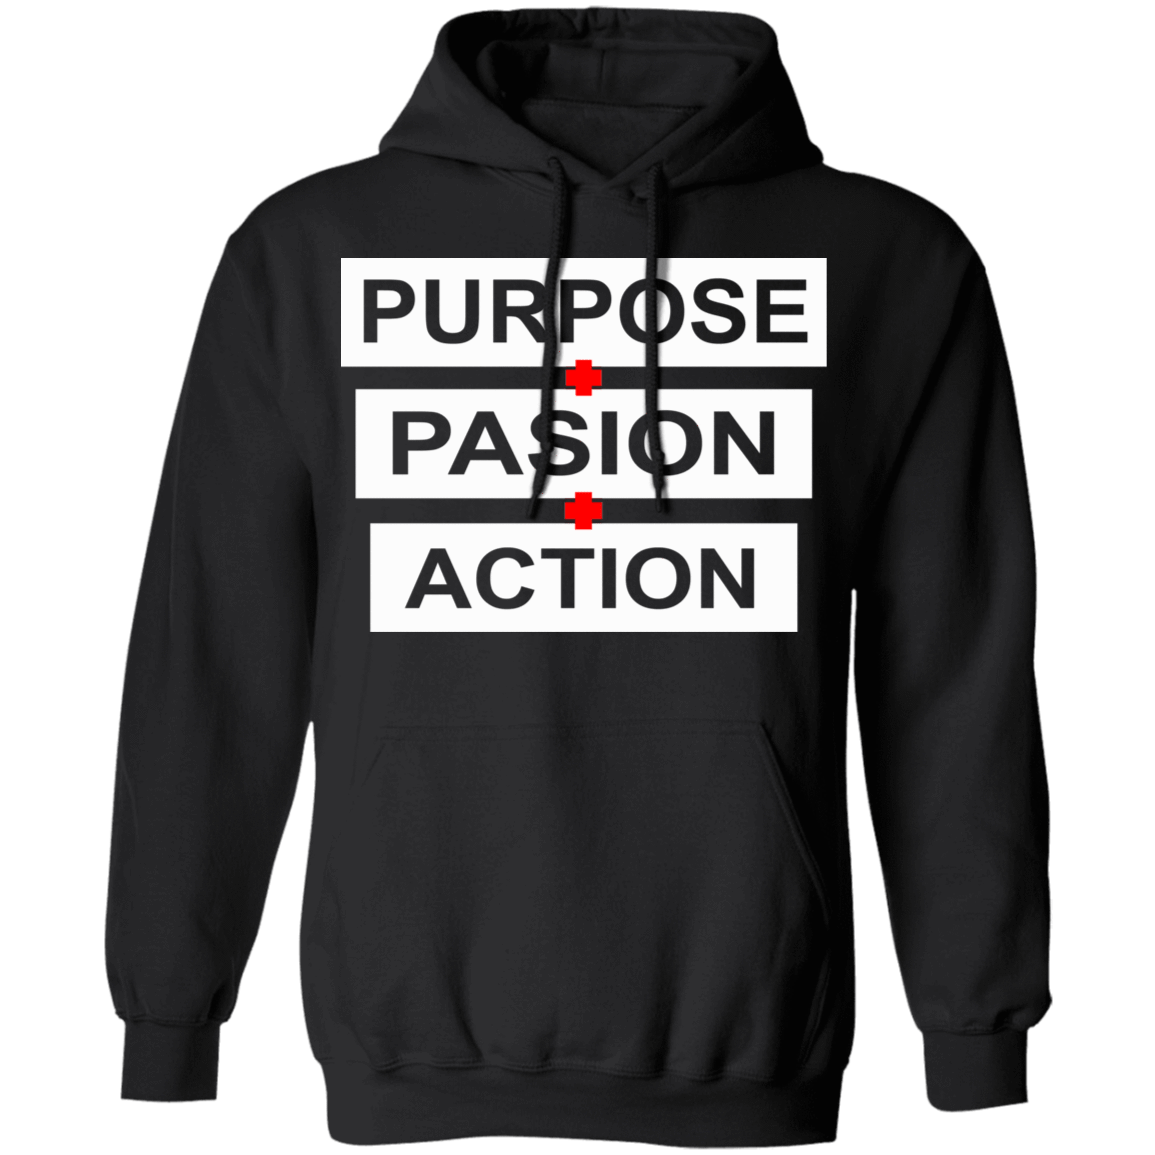 Purpose Passion Action T-Shirts, Hoodies, Tank 541-4740-79808365-23087 - Tee Ript